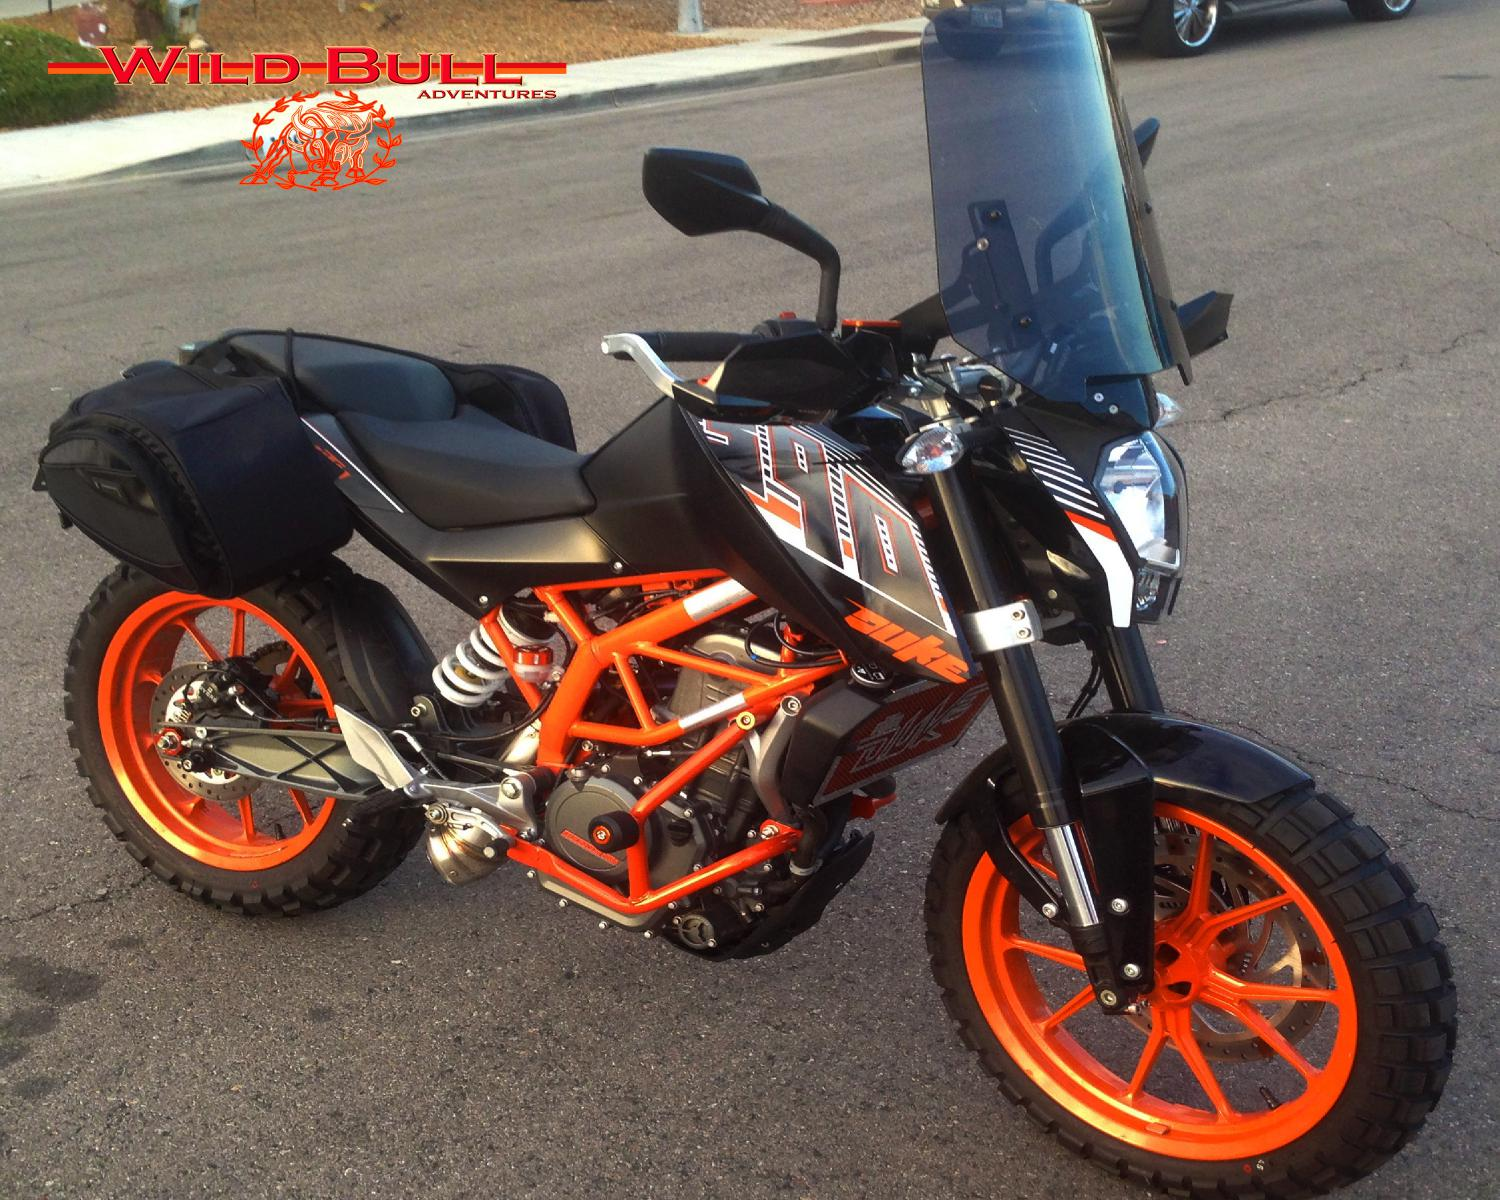 wife 39 s ktm duke 390 adventure ktm duke 390 forum. Black Bedroom Furniture Sets. Home Design Ideas